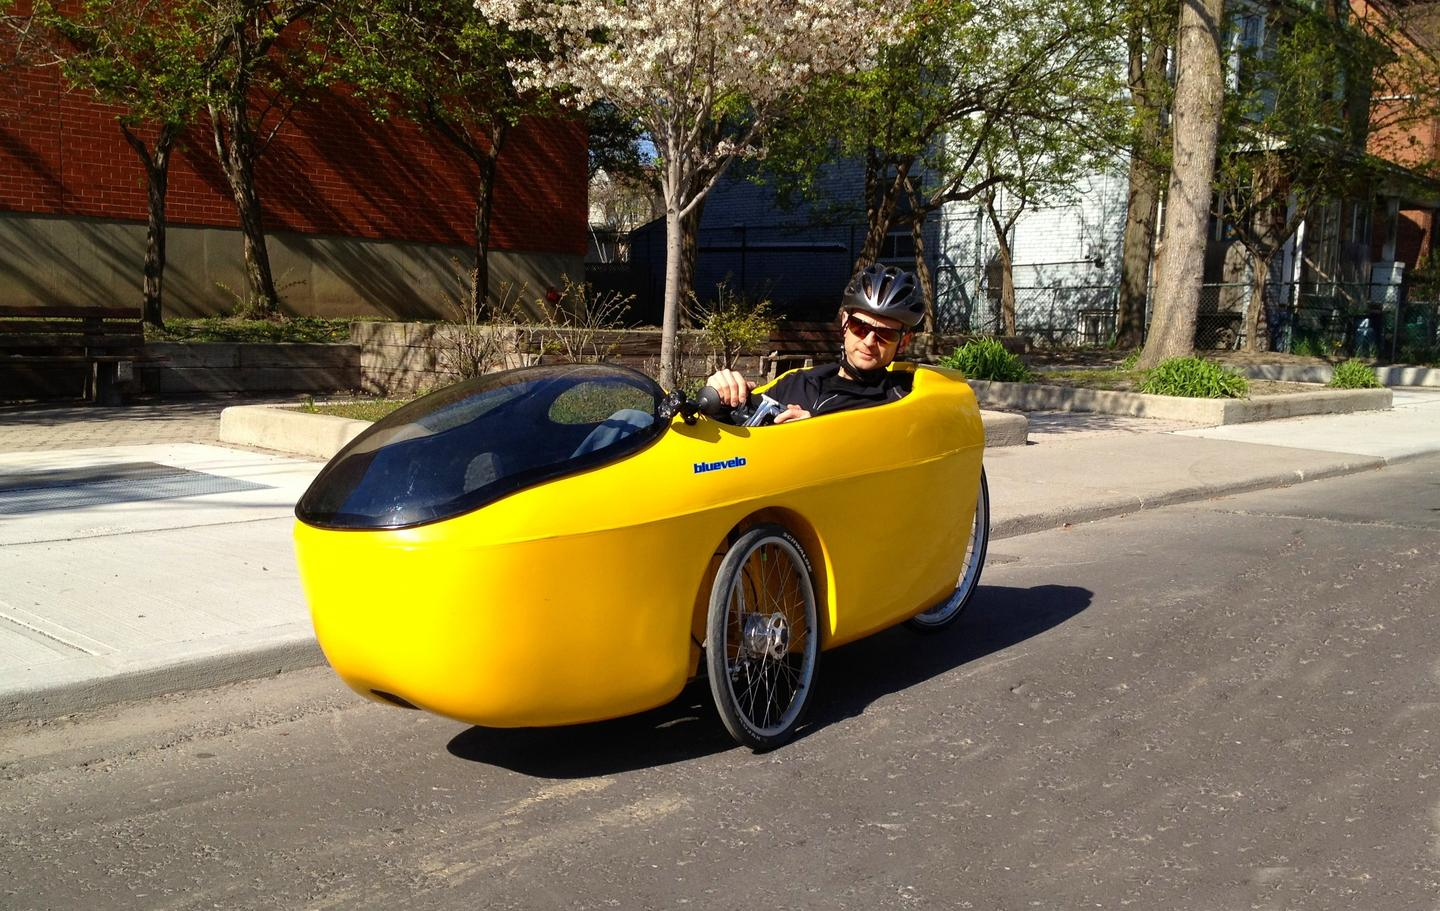 The Hornet is a new velomobile that is designed around an included electric-assist motor